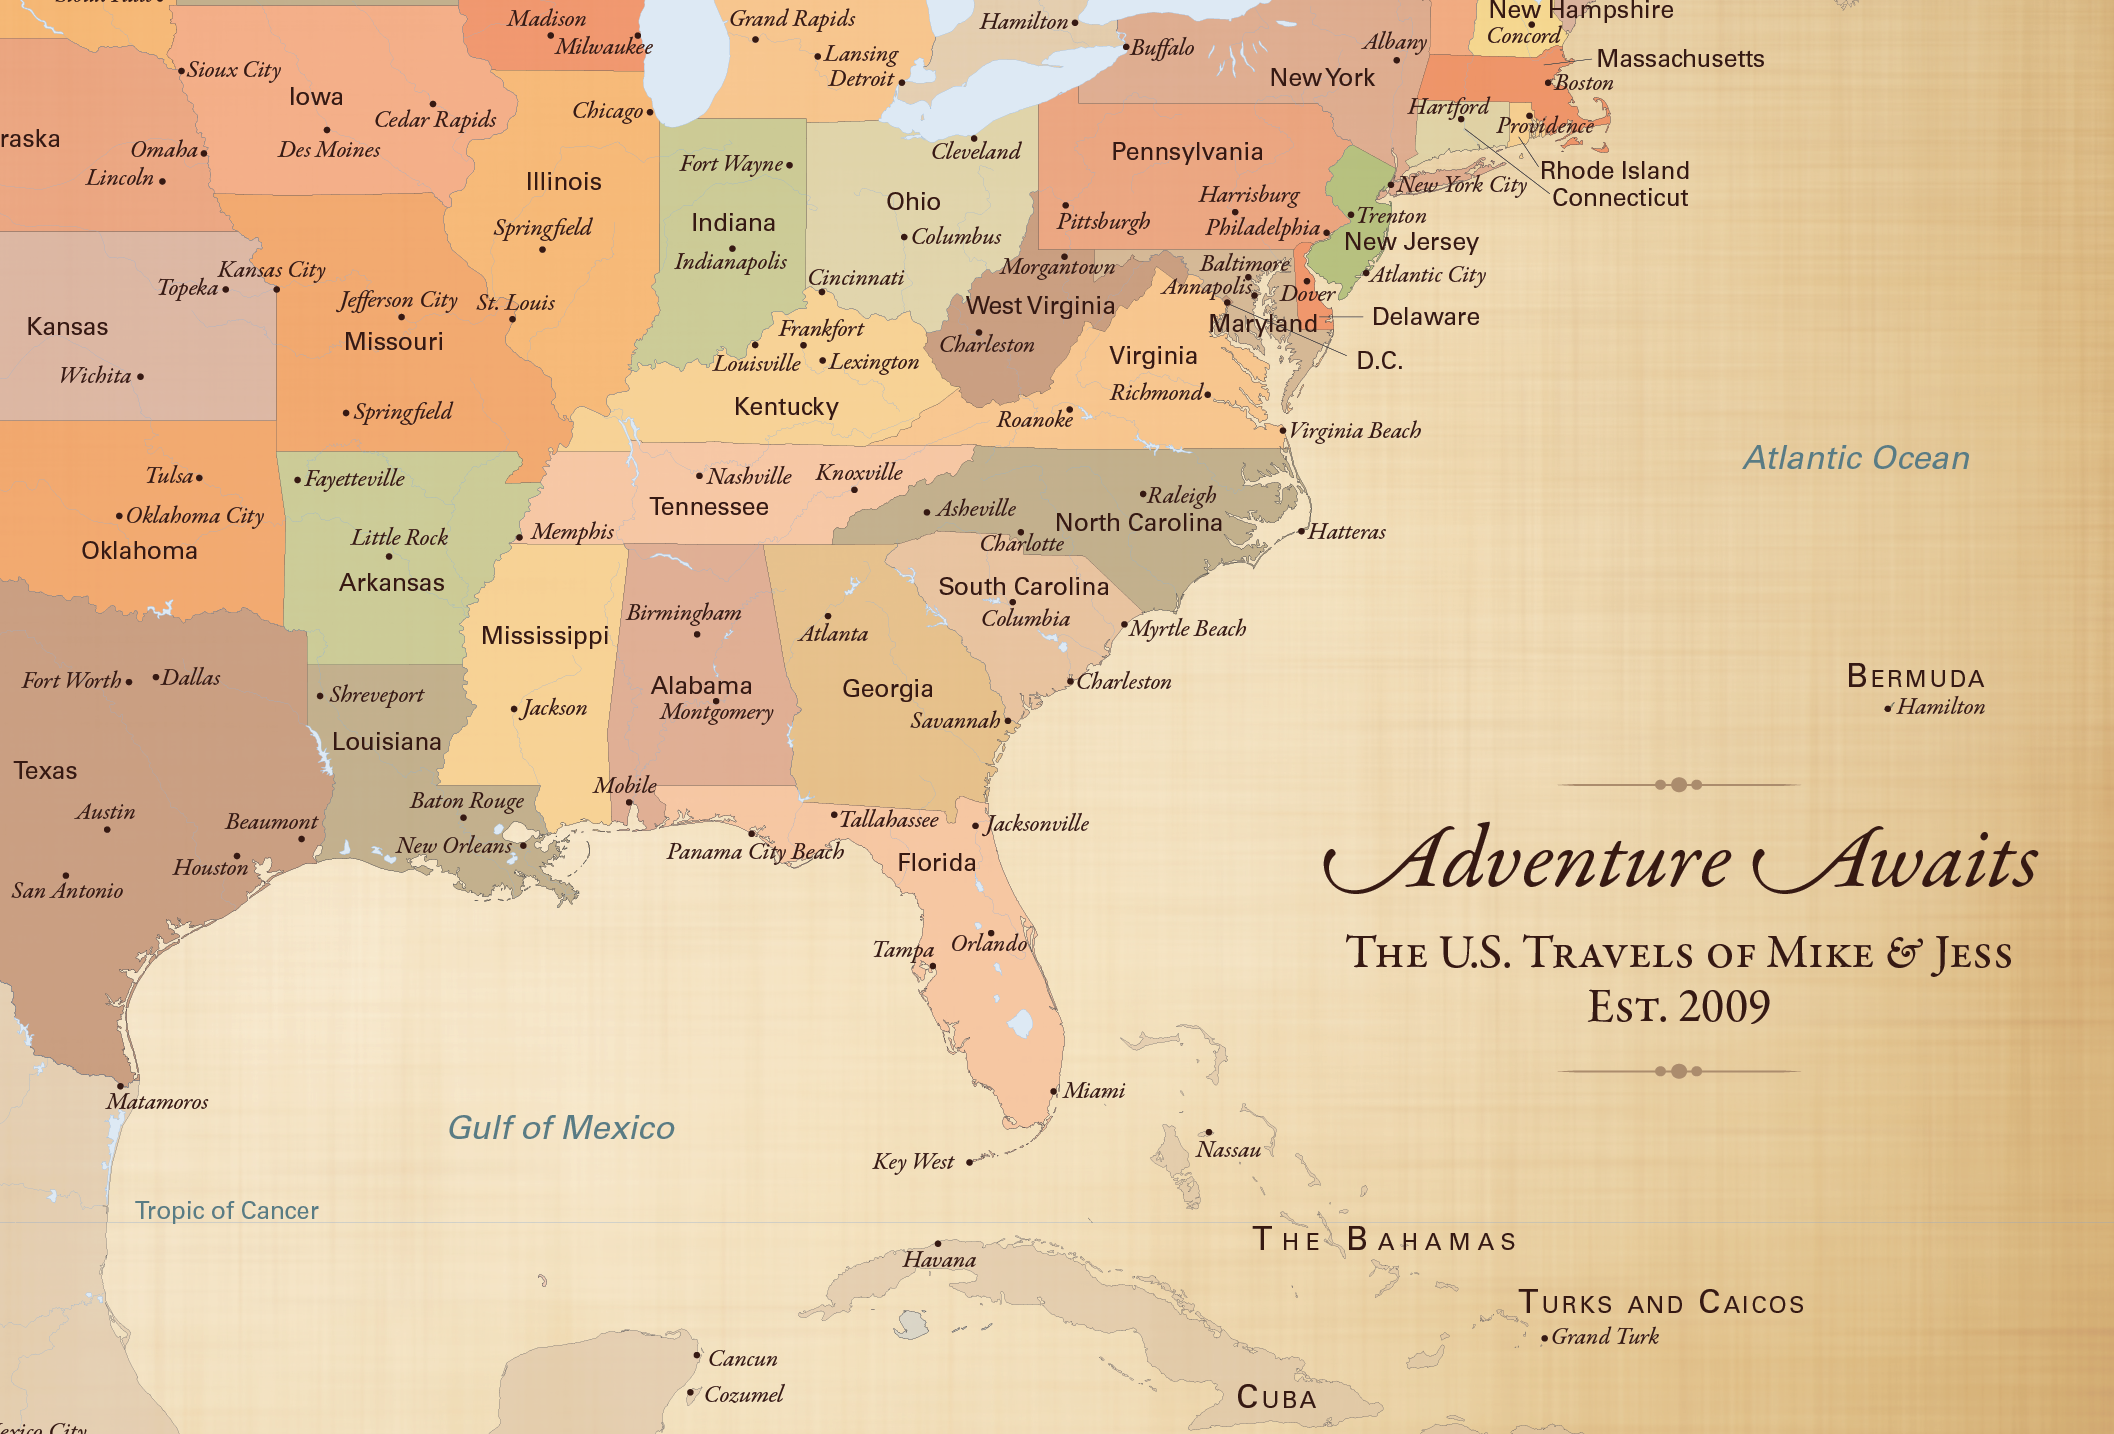 Adventure Awaits Us Travel Map With 100 Map Pins - Us-travel-map